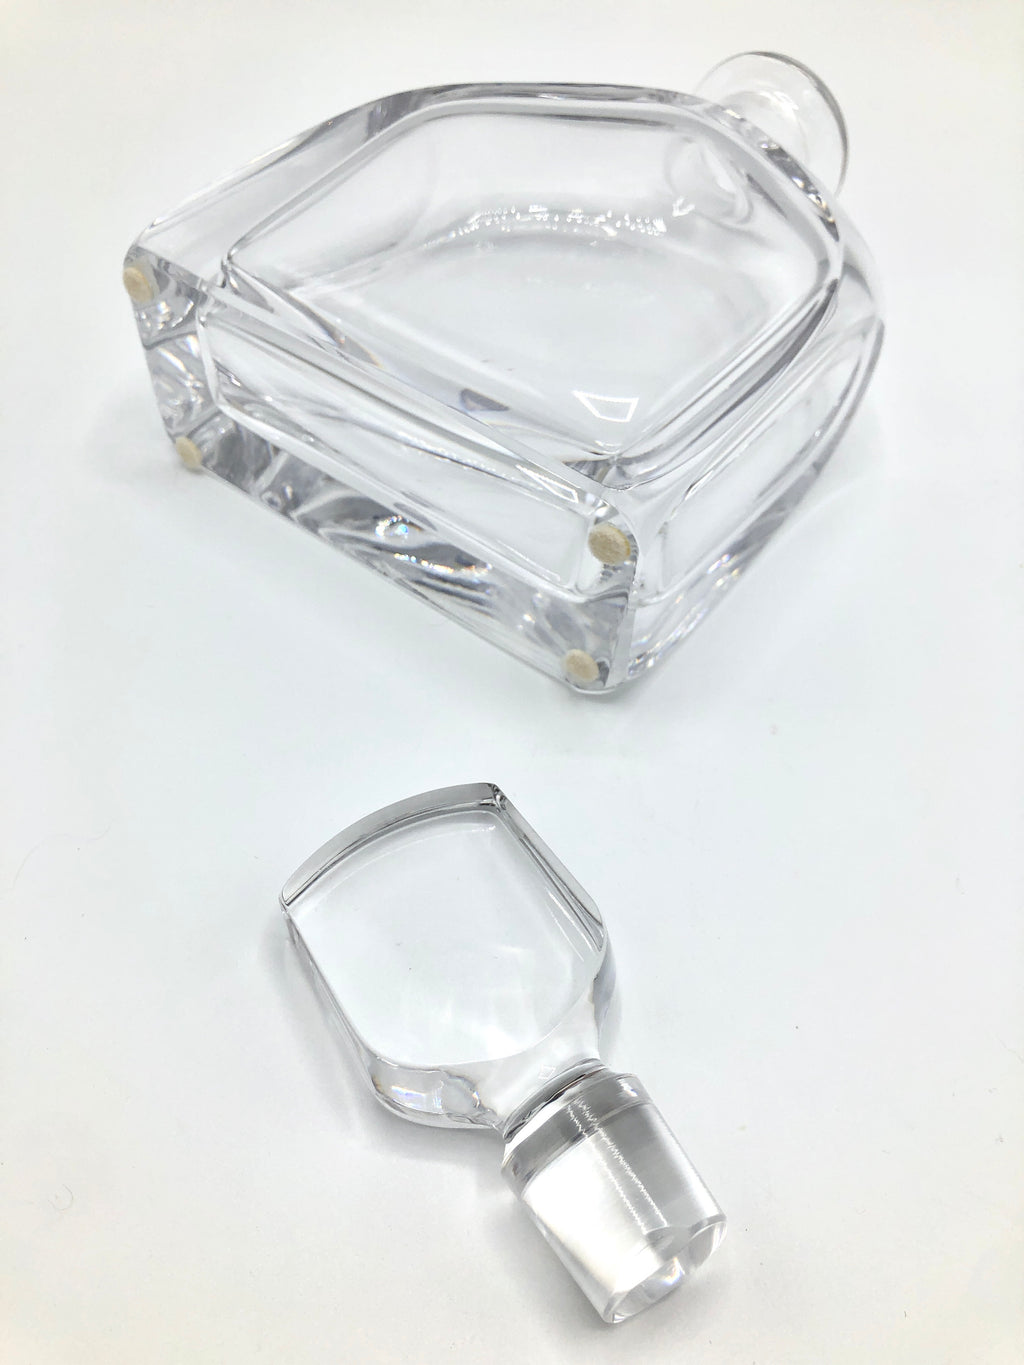 Vintage Orrefors Crystal Decanter